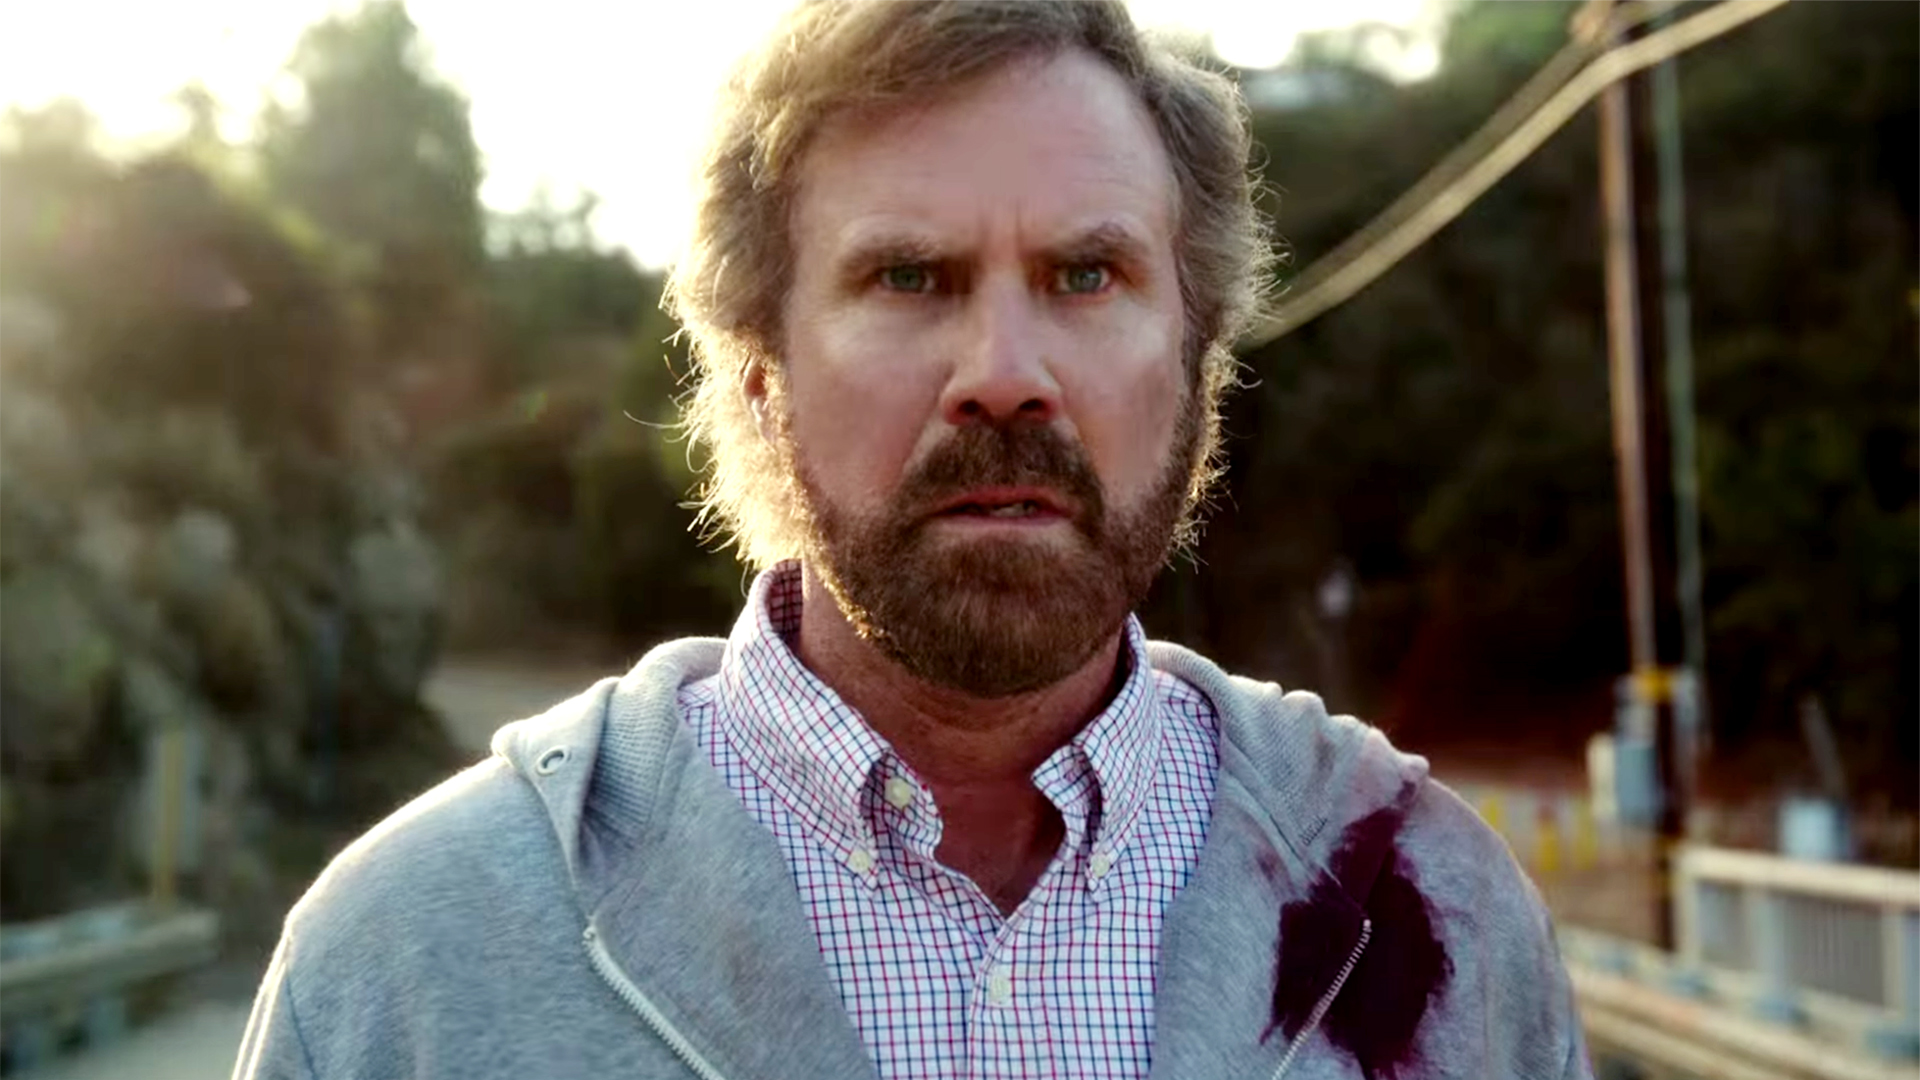 Inspired by a true story, A Deadly Adoption is a high-stakes dramatic thriller about a successful couple (Will Ferrell and Kristen Wiig) who house and care for a pregnant woman (Jessica Lowndes) during the final months of her pregnancy with the hope of adopting her unborn child.